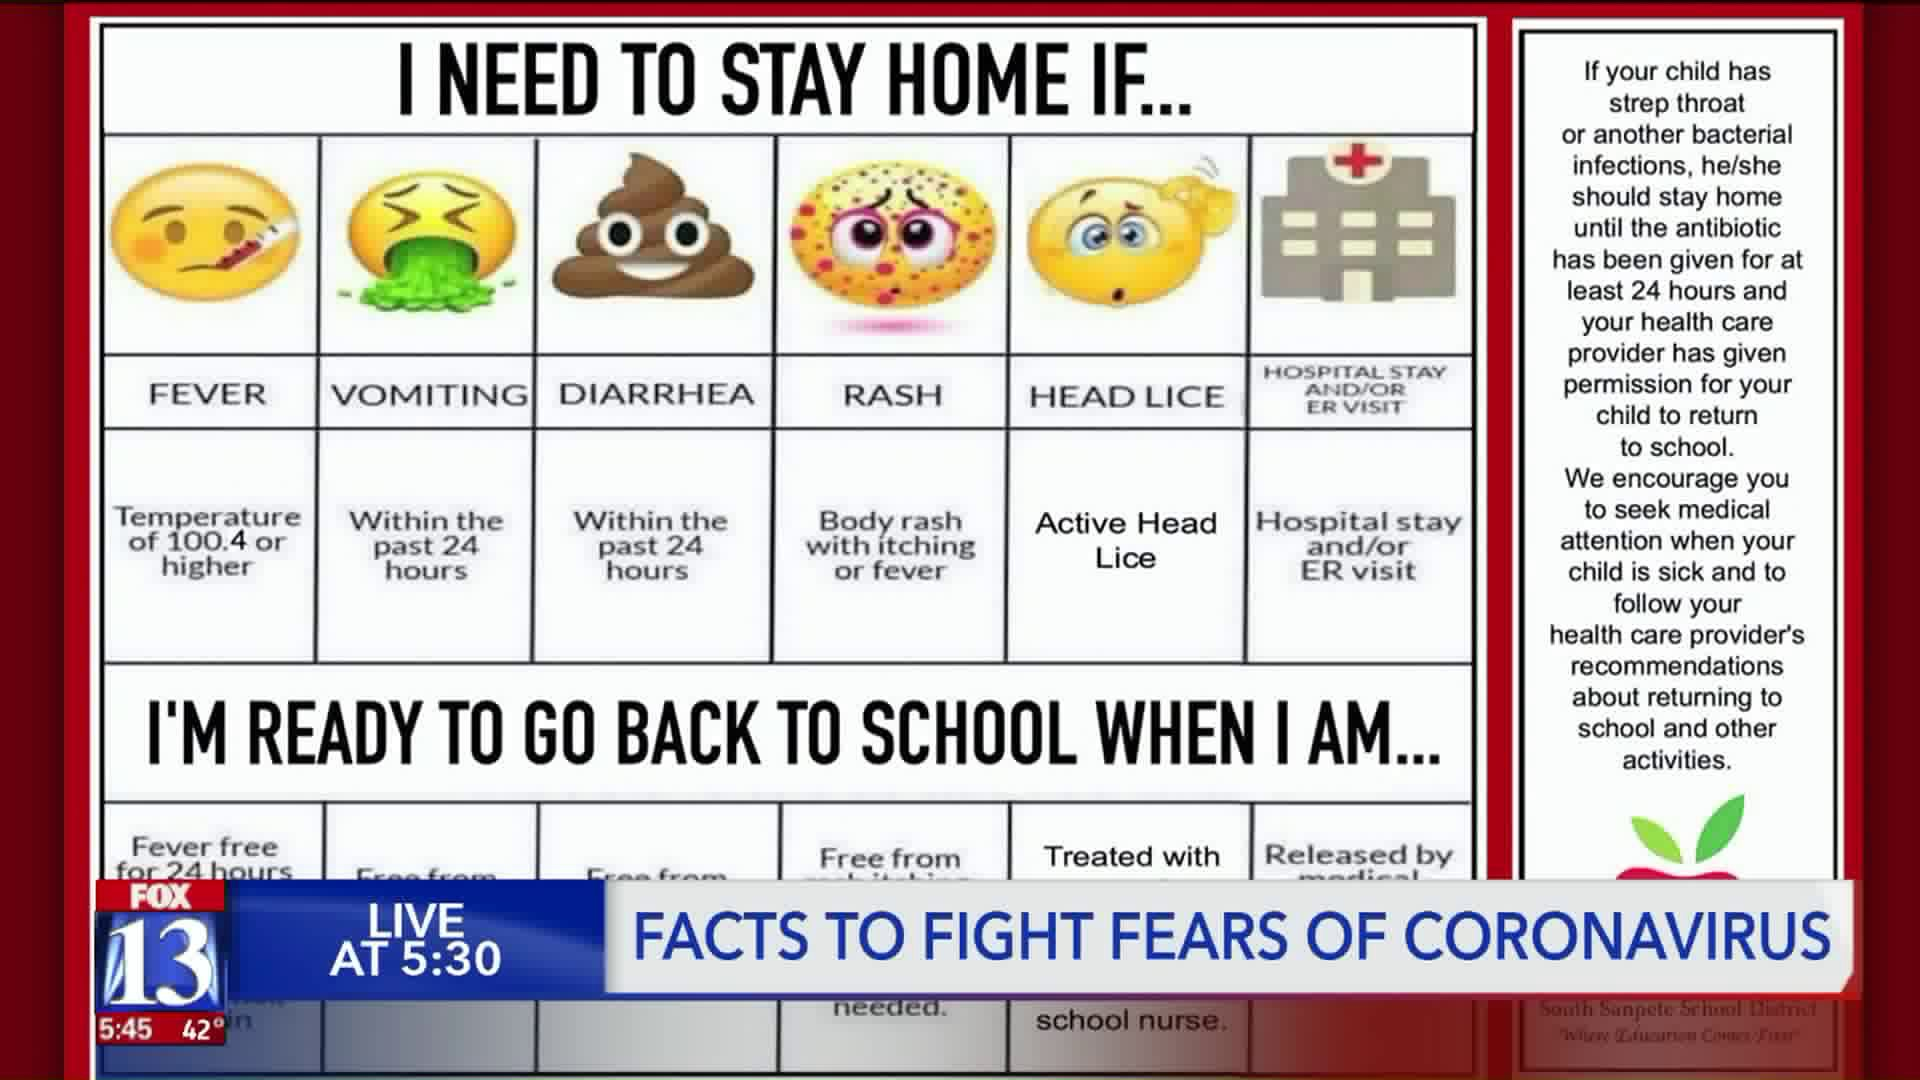 Dispelling coronavirus rumors with facts; When to stay home if sick